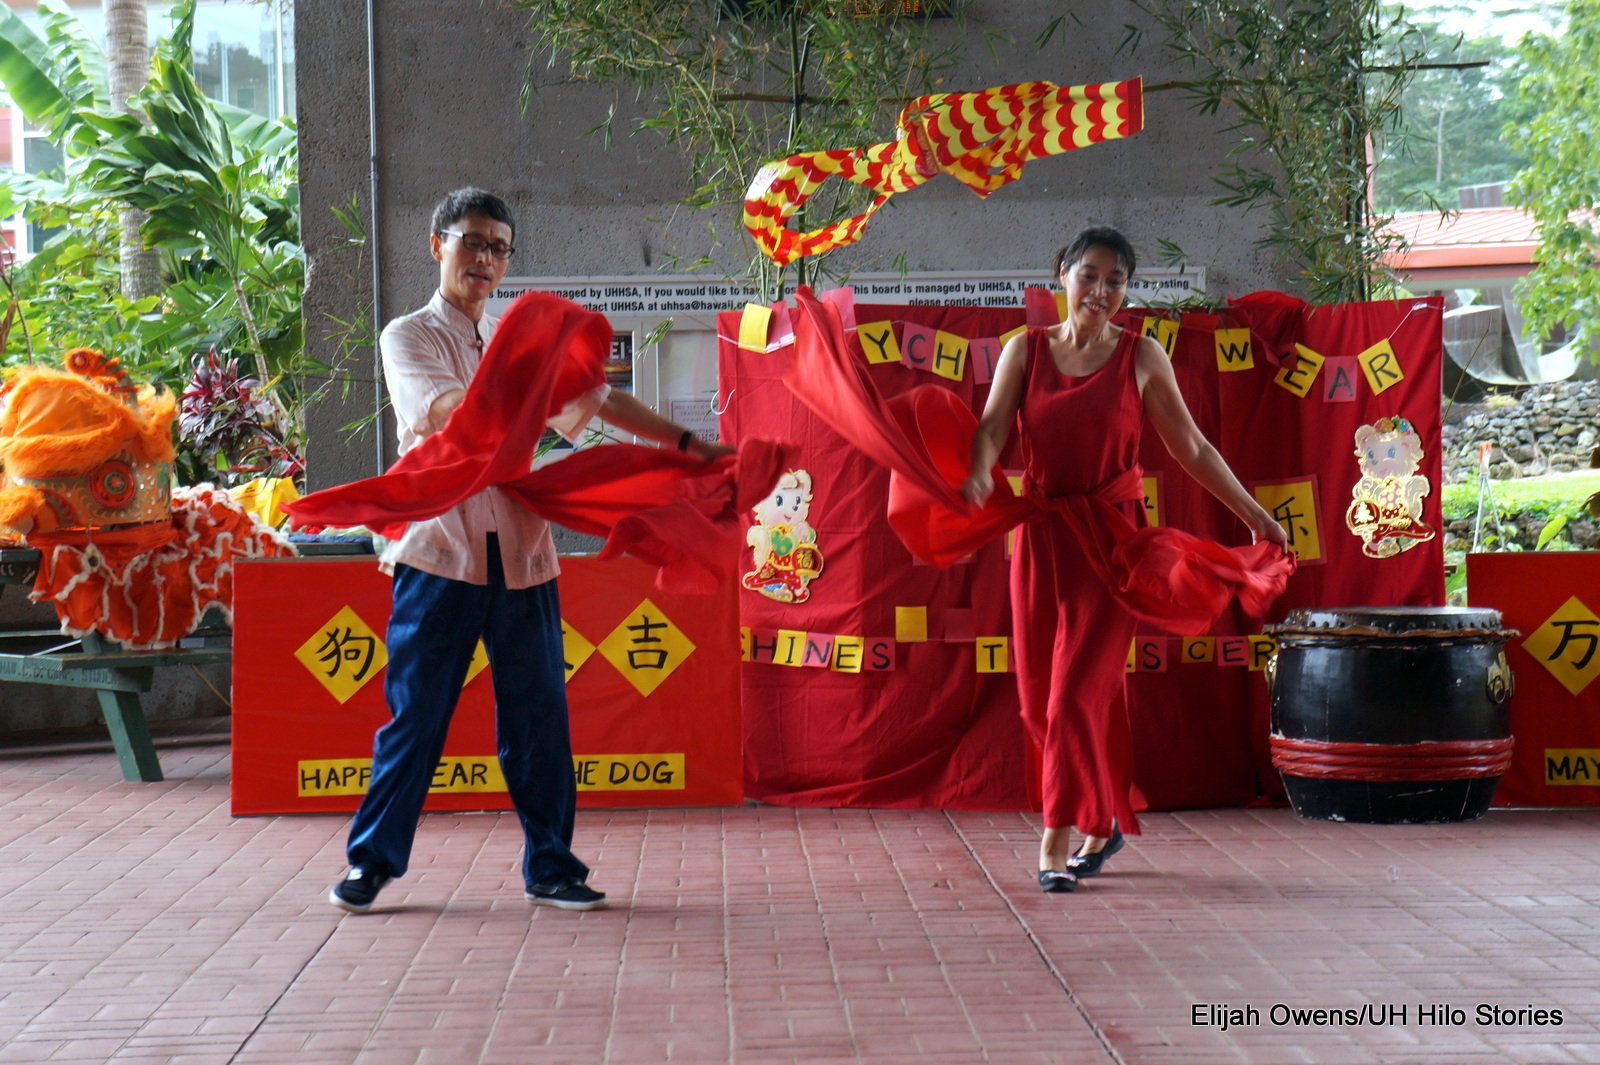 Couple dancing with red silk scarves.